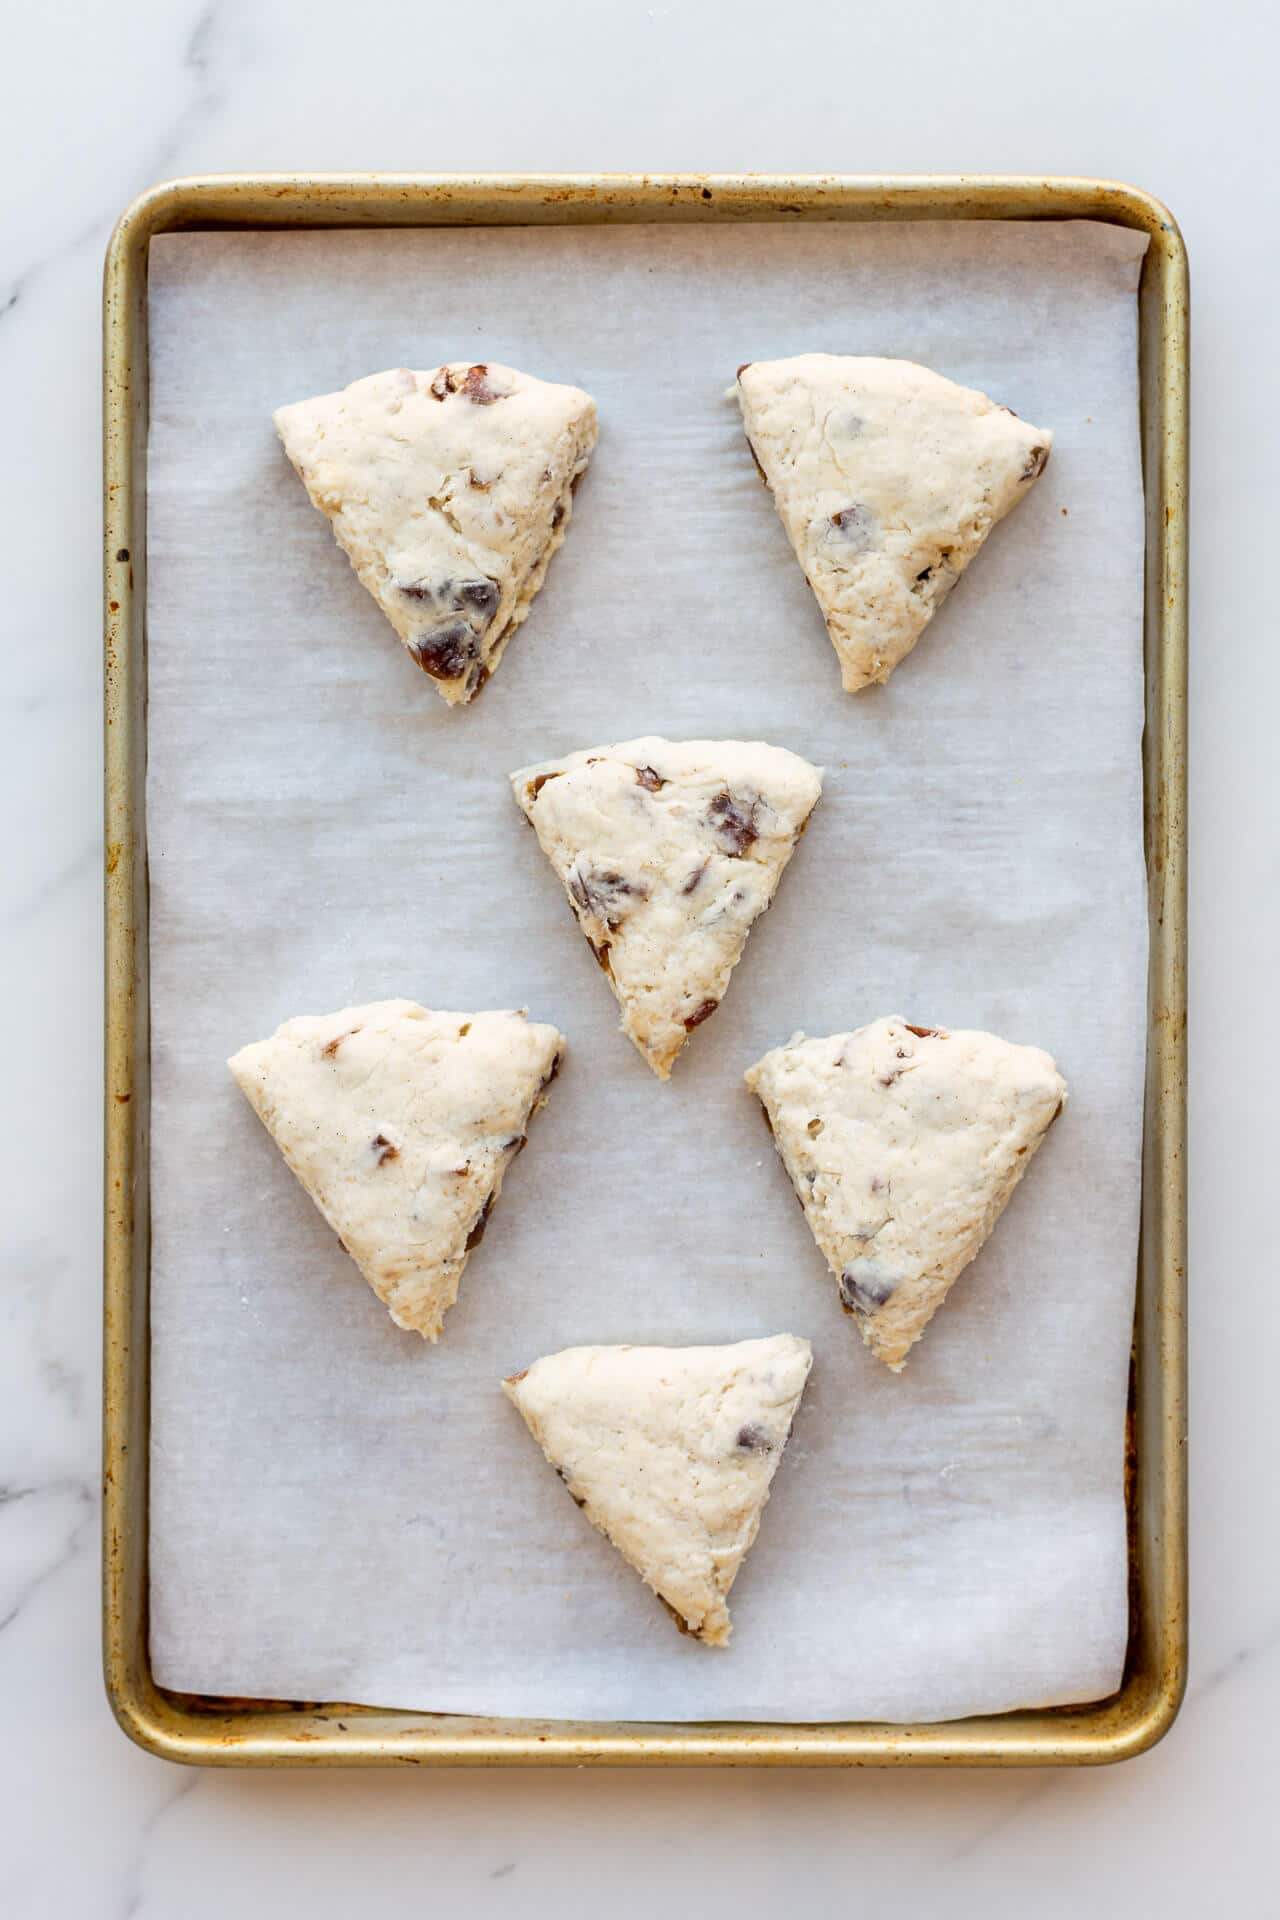 Six (6) triangle wedge scones on a parchment-lined sheet pan before baking